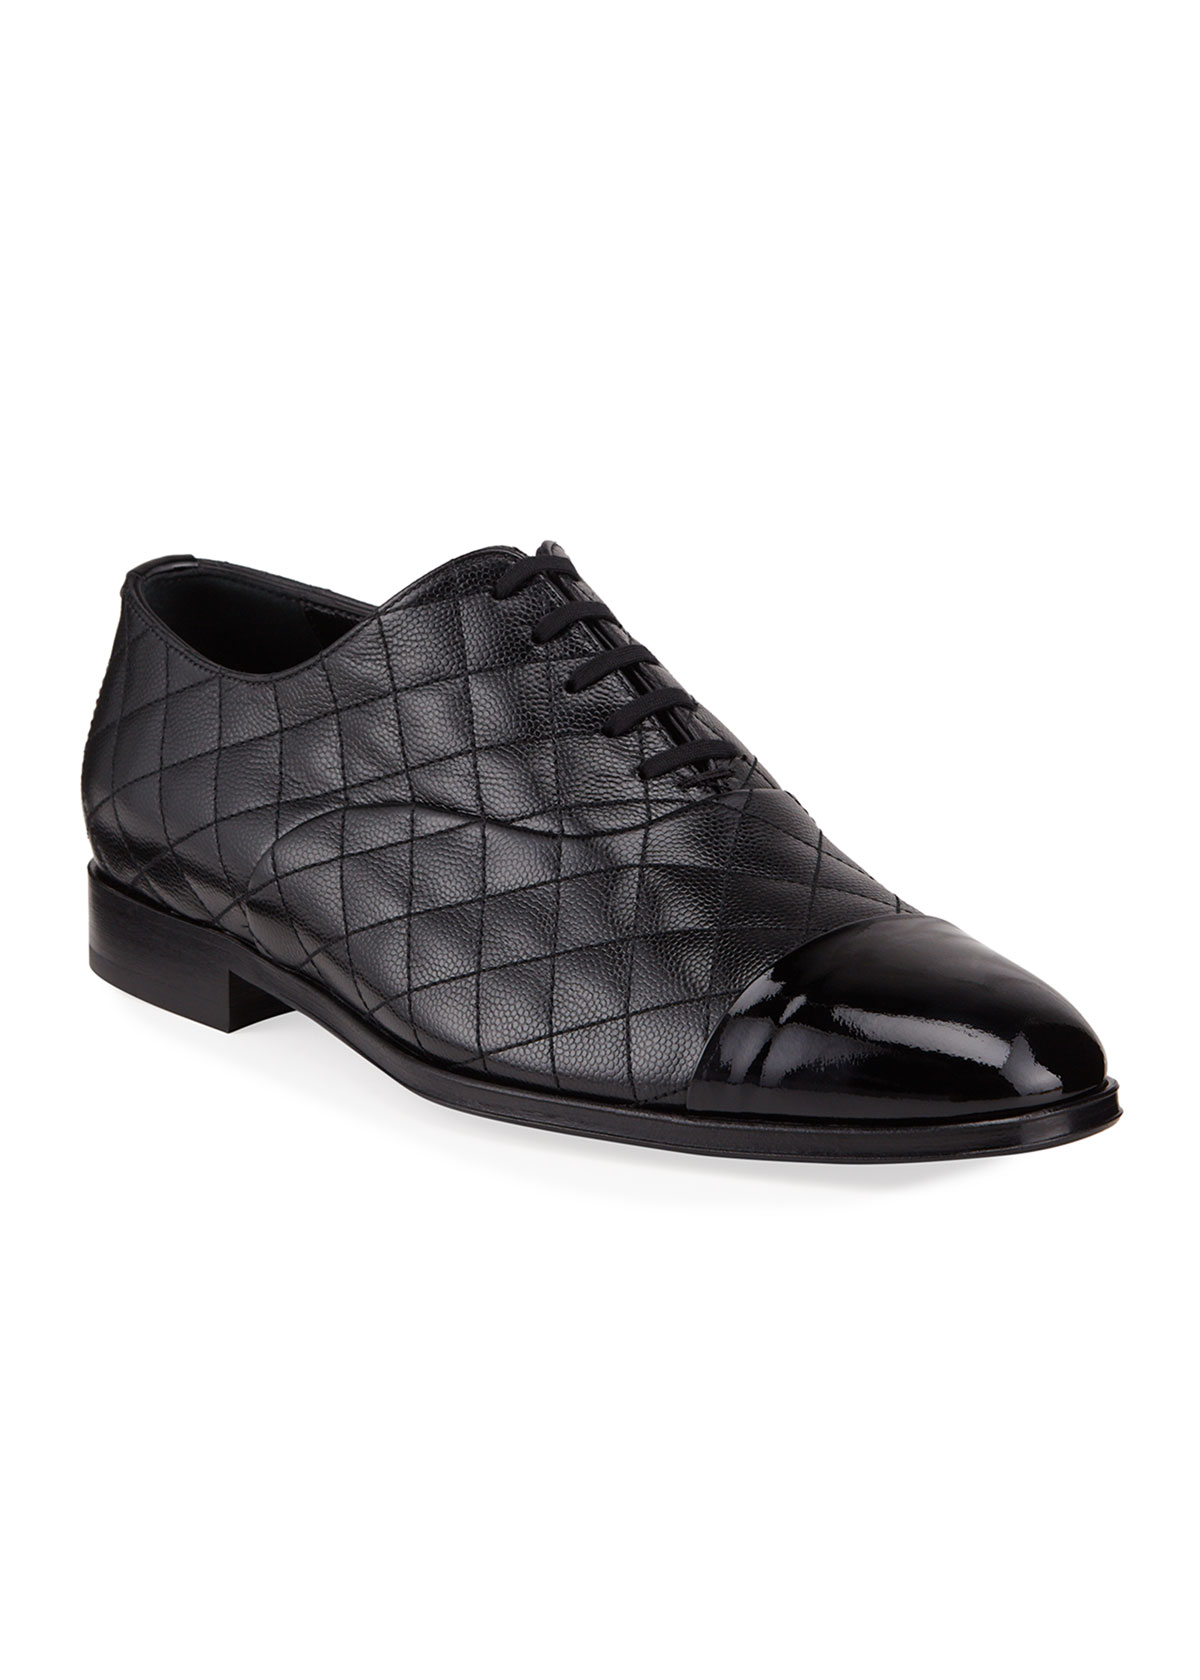 Burberry MEN'S QUILTED LEATHER OXFORD SHOES